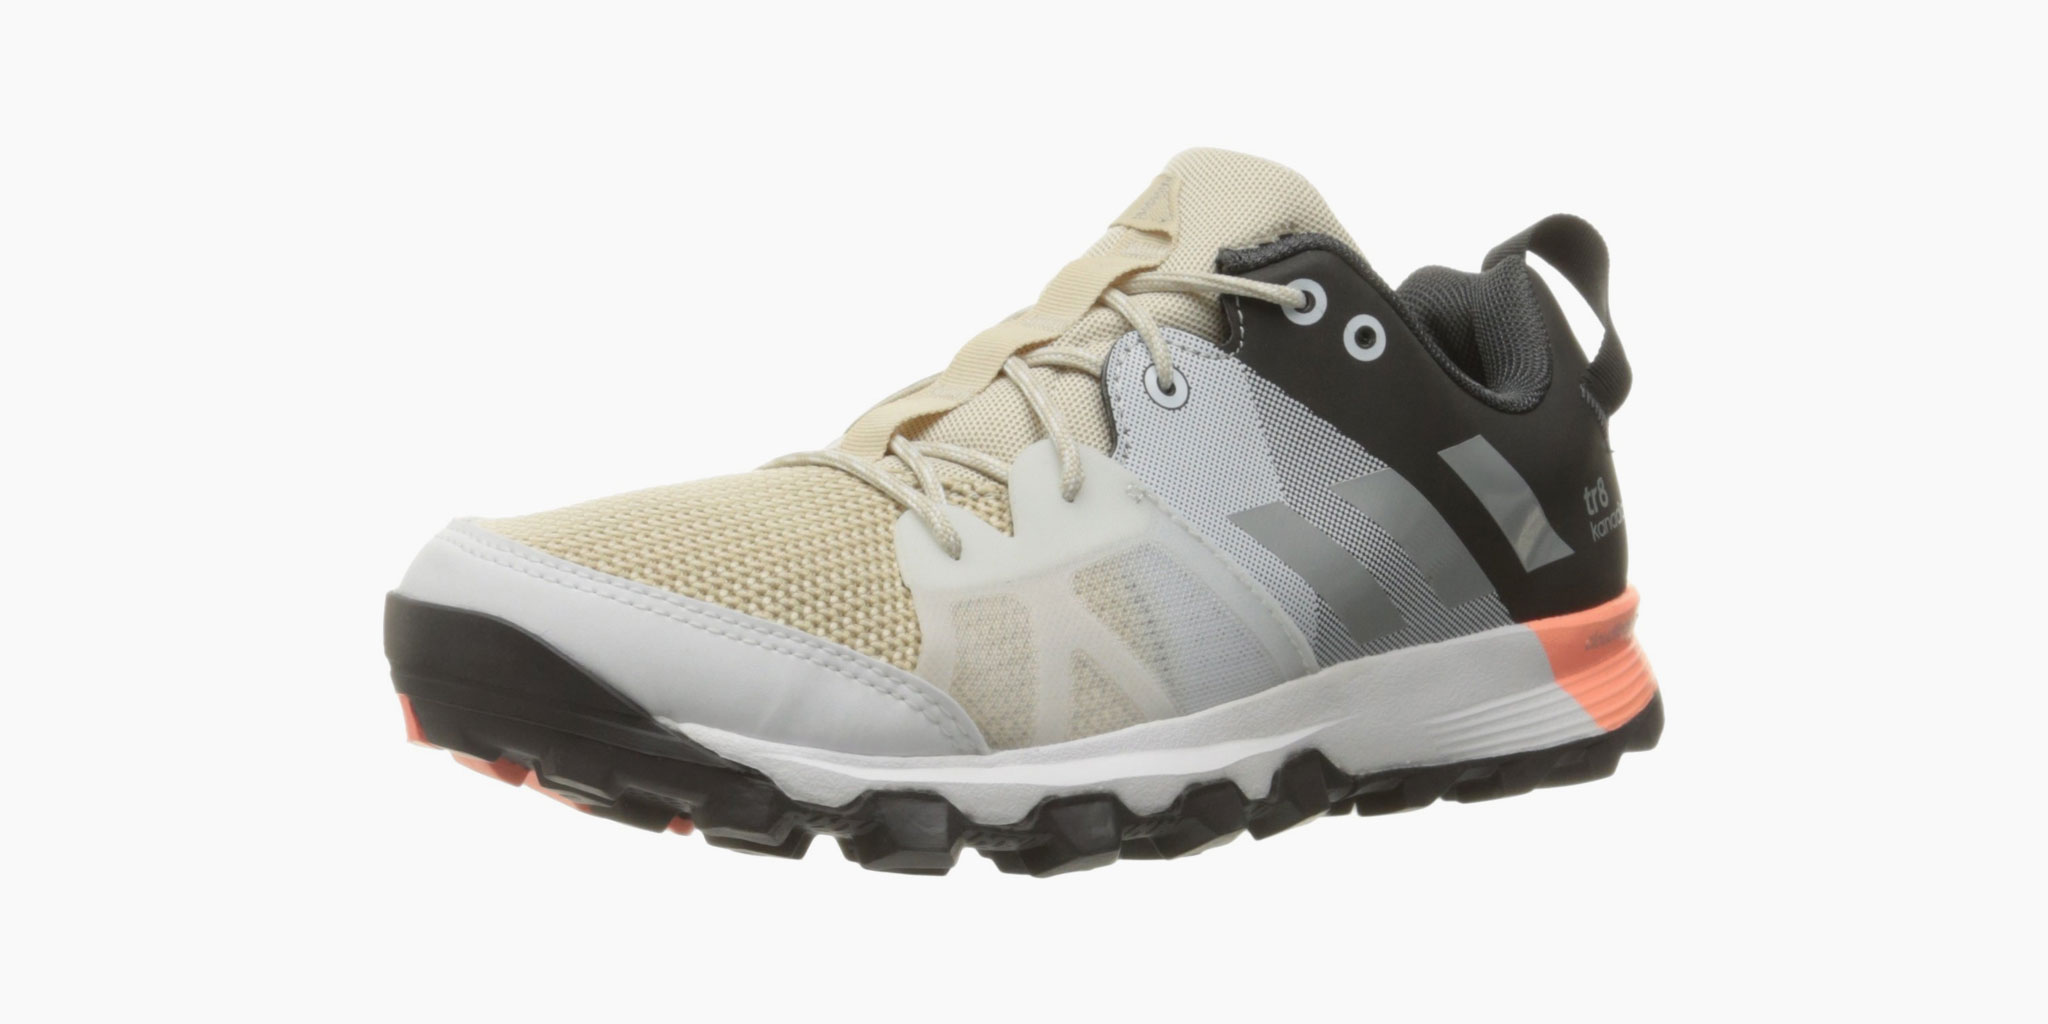 Road Running Shoes With Best Traction In Wet Review